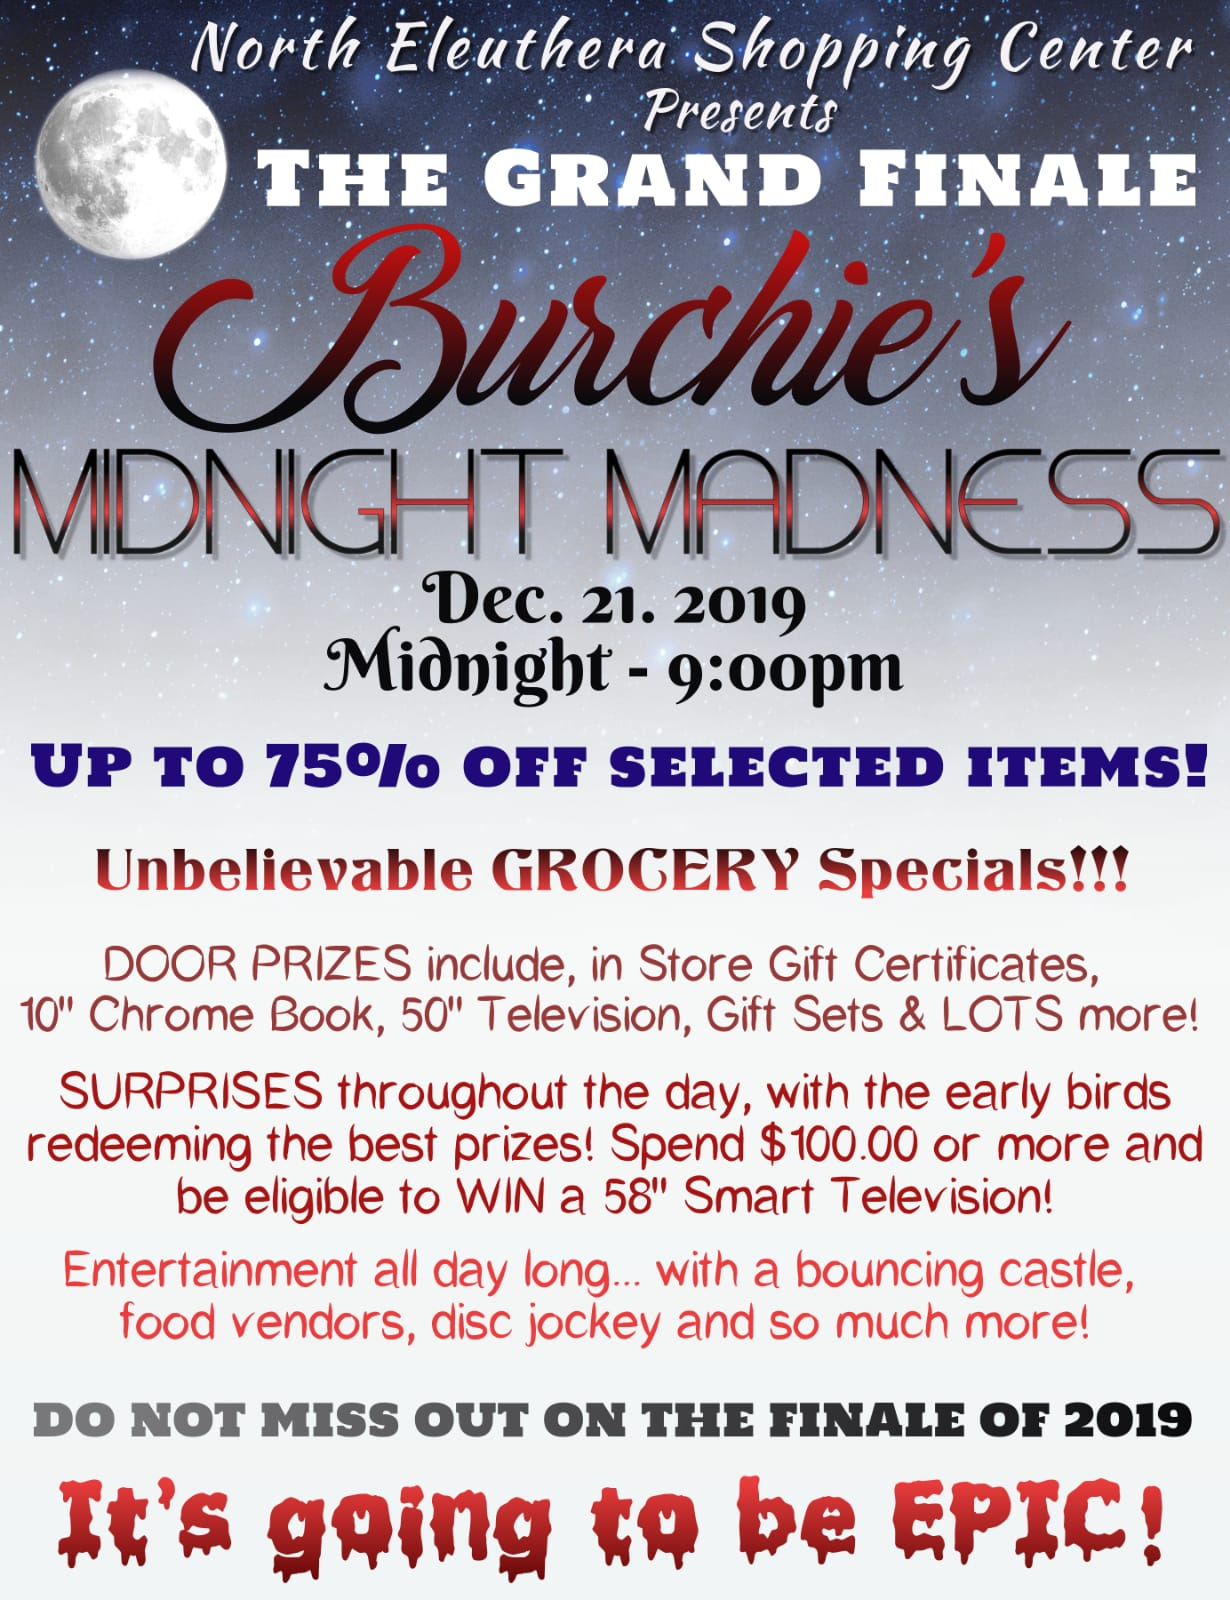 Burchie Midnight Madness Sale - Dec 21